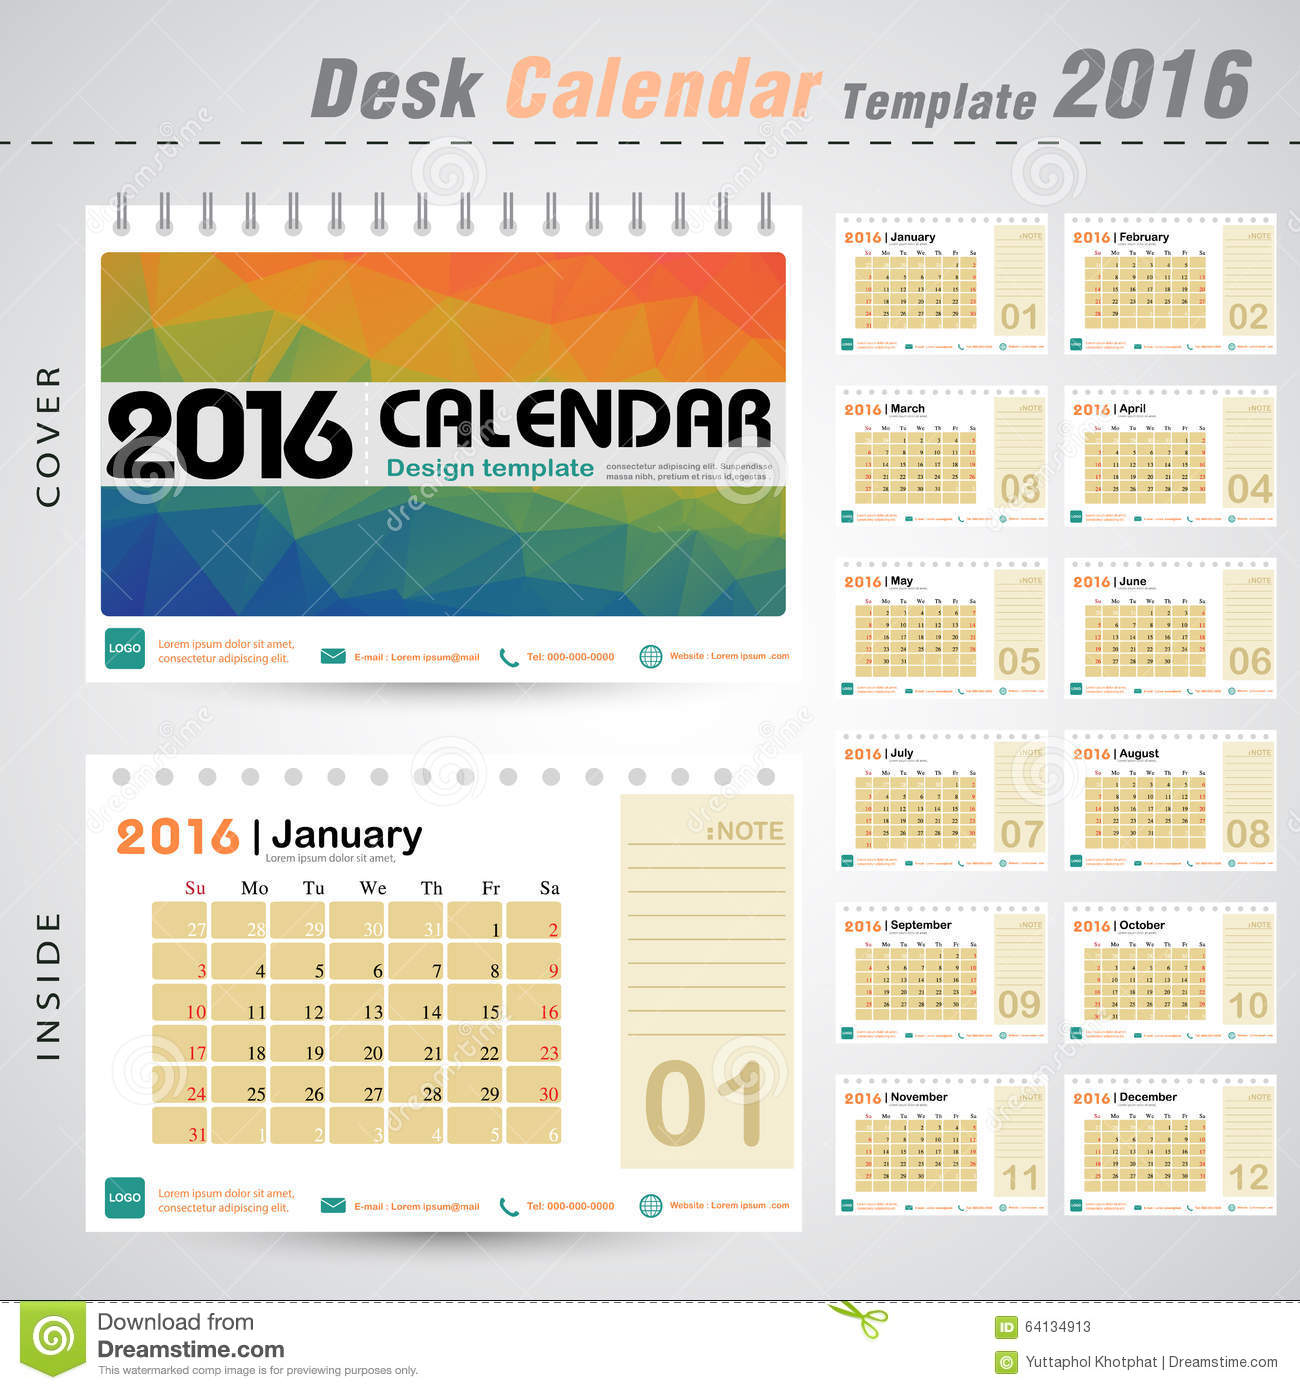 Desk Calendar Design : Desk calendar vector design template with colorful